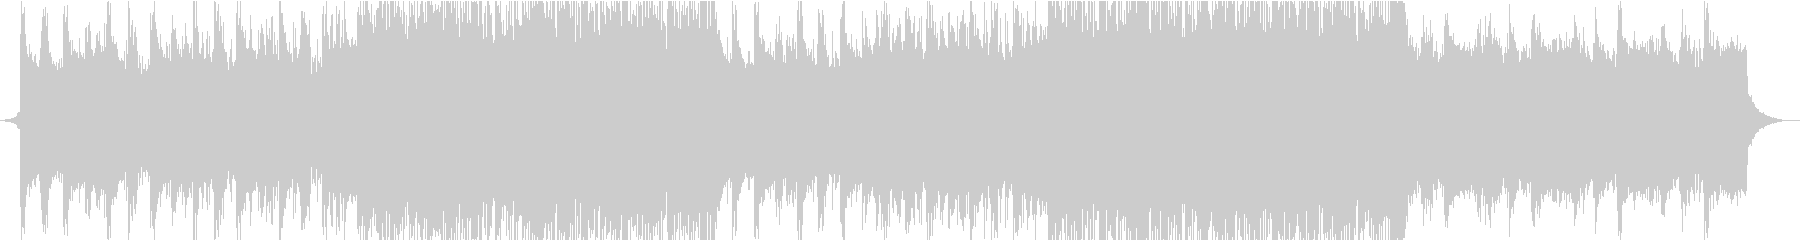 Piano rock that looks like an overseas introduction video's unreproduced waveform